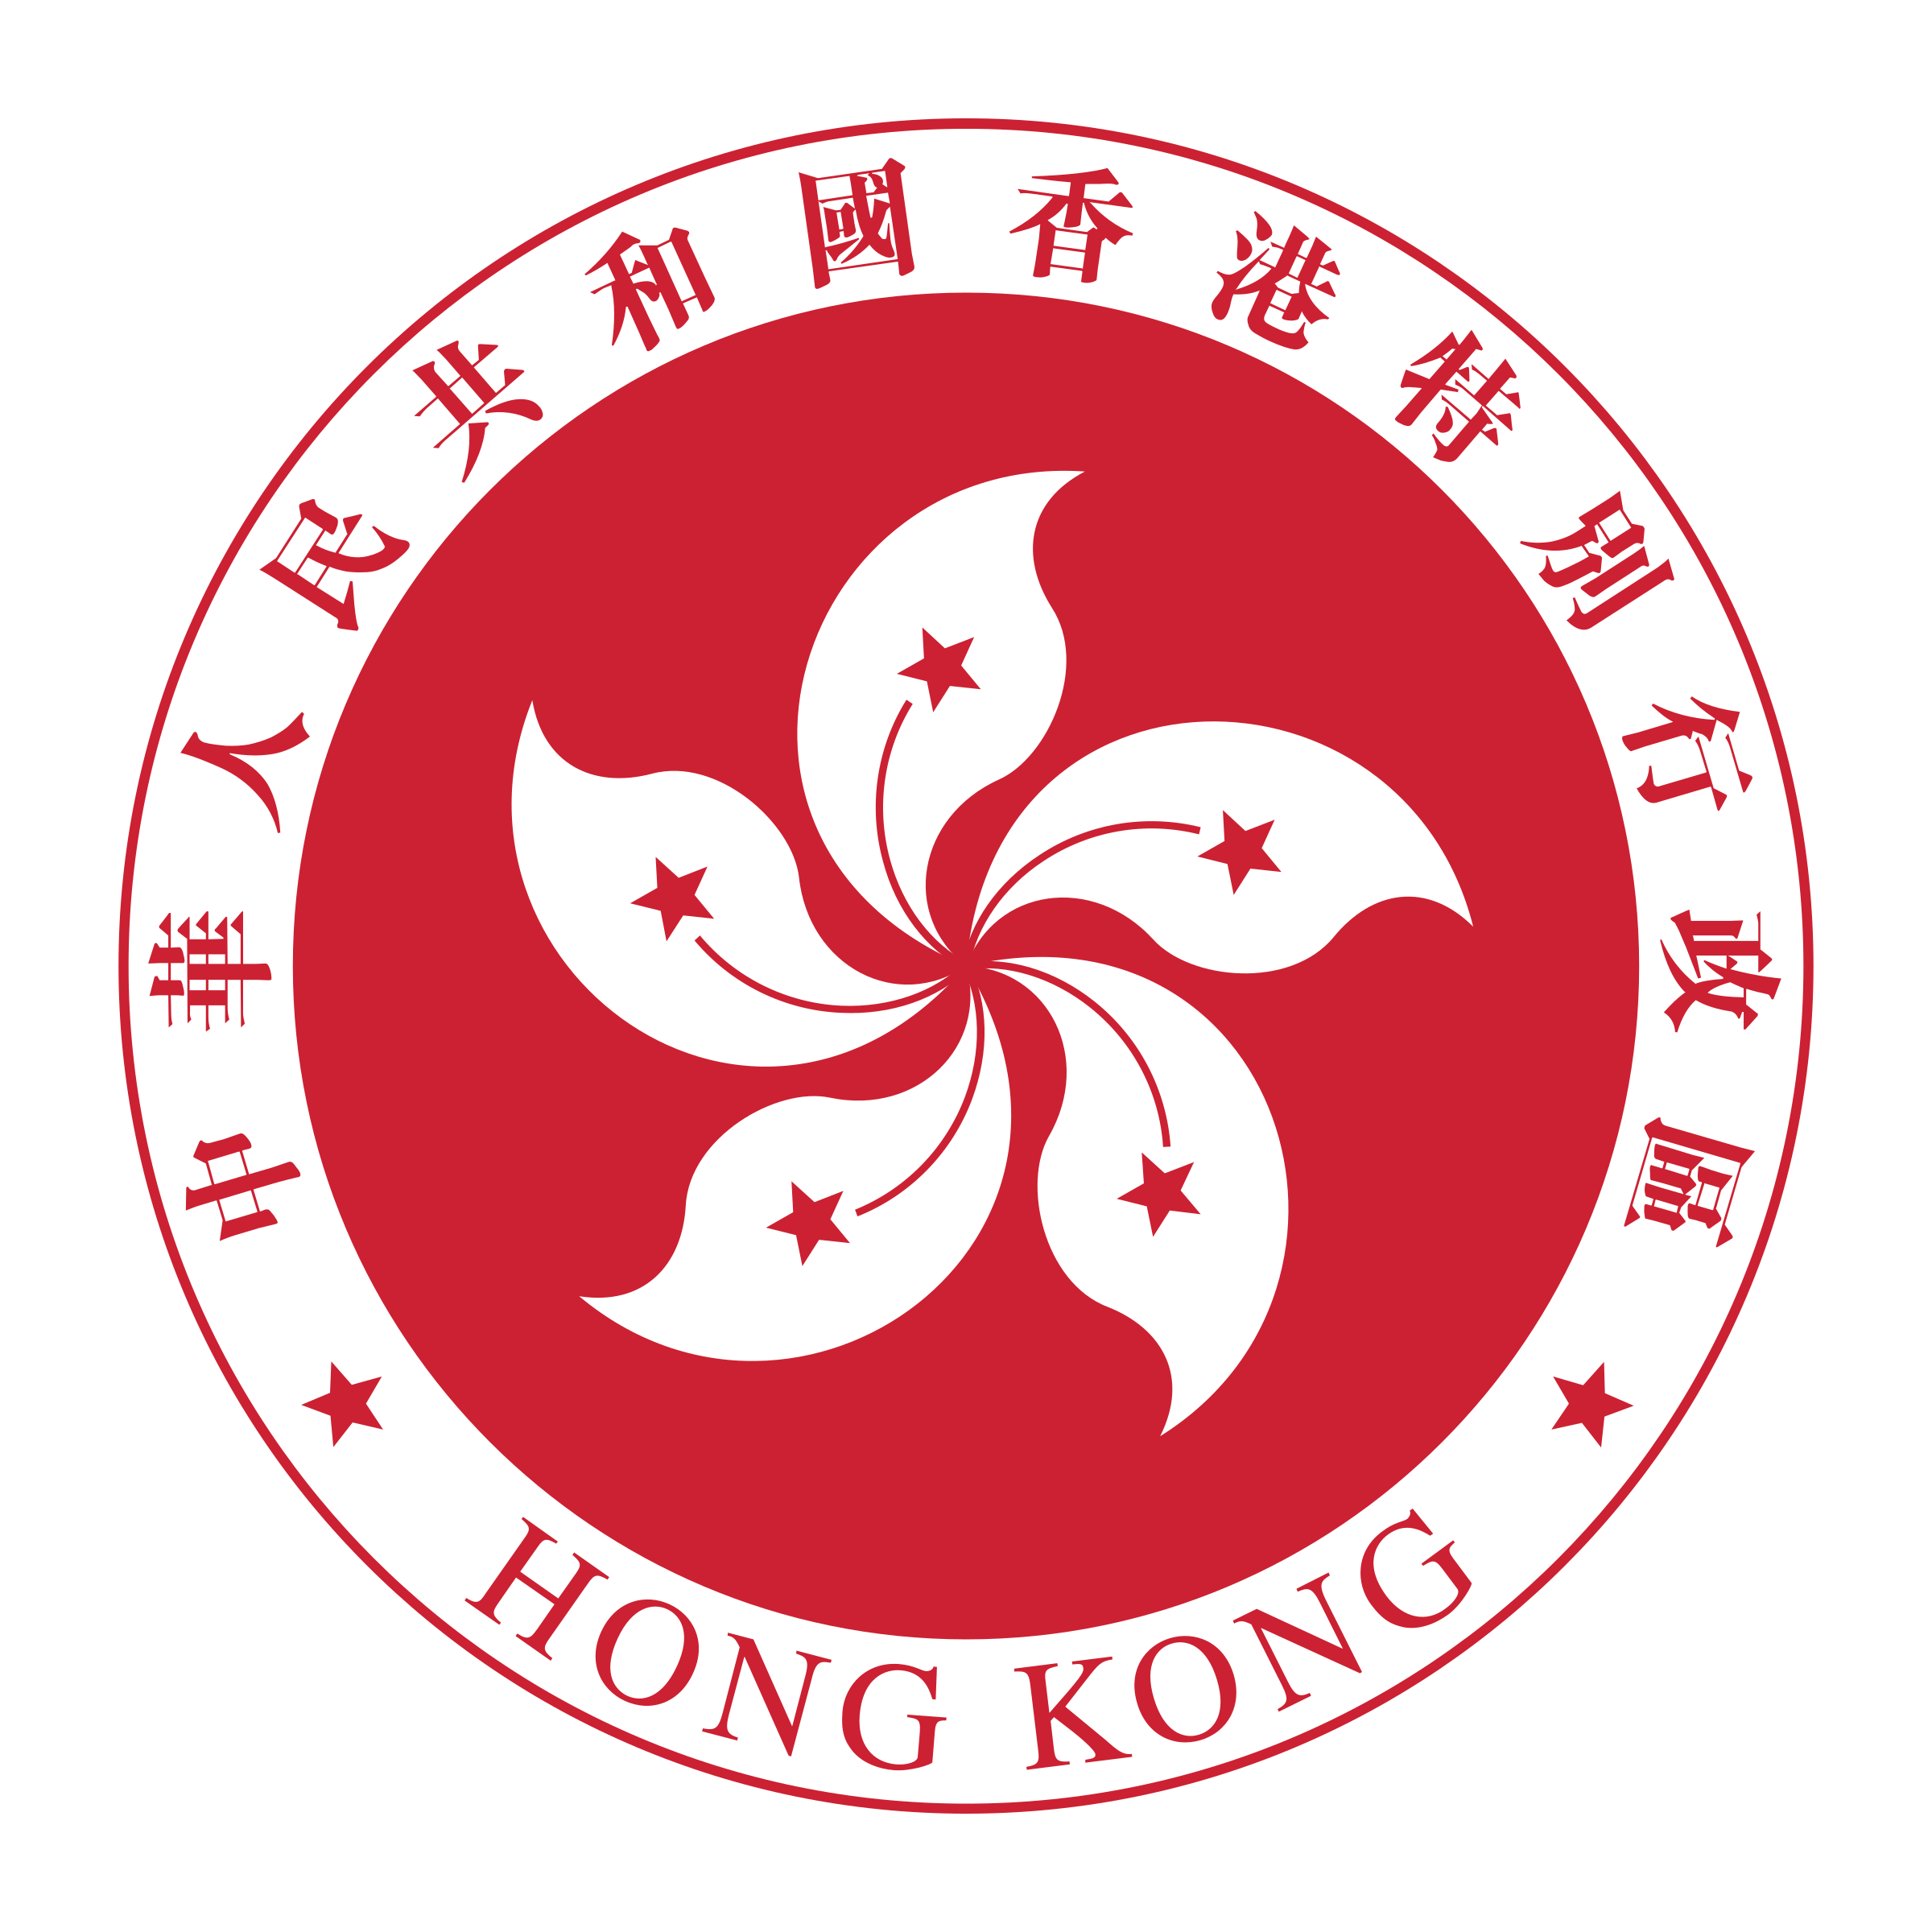 Hong Kong Logo PNG Transparent & SVG Vector.